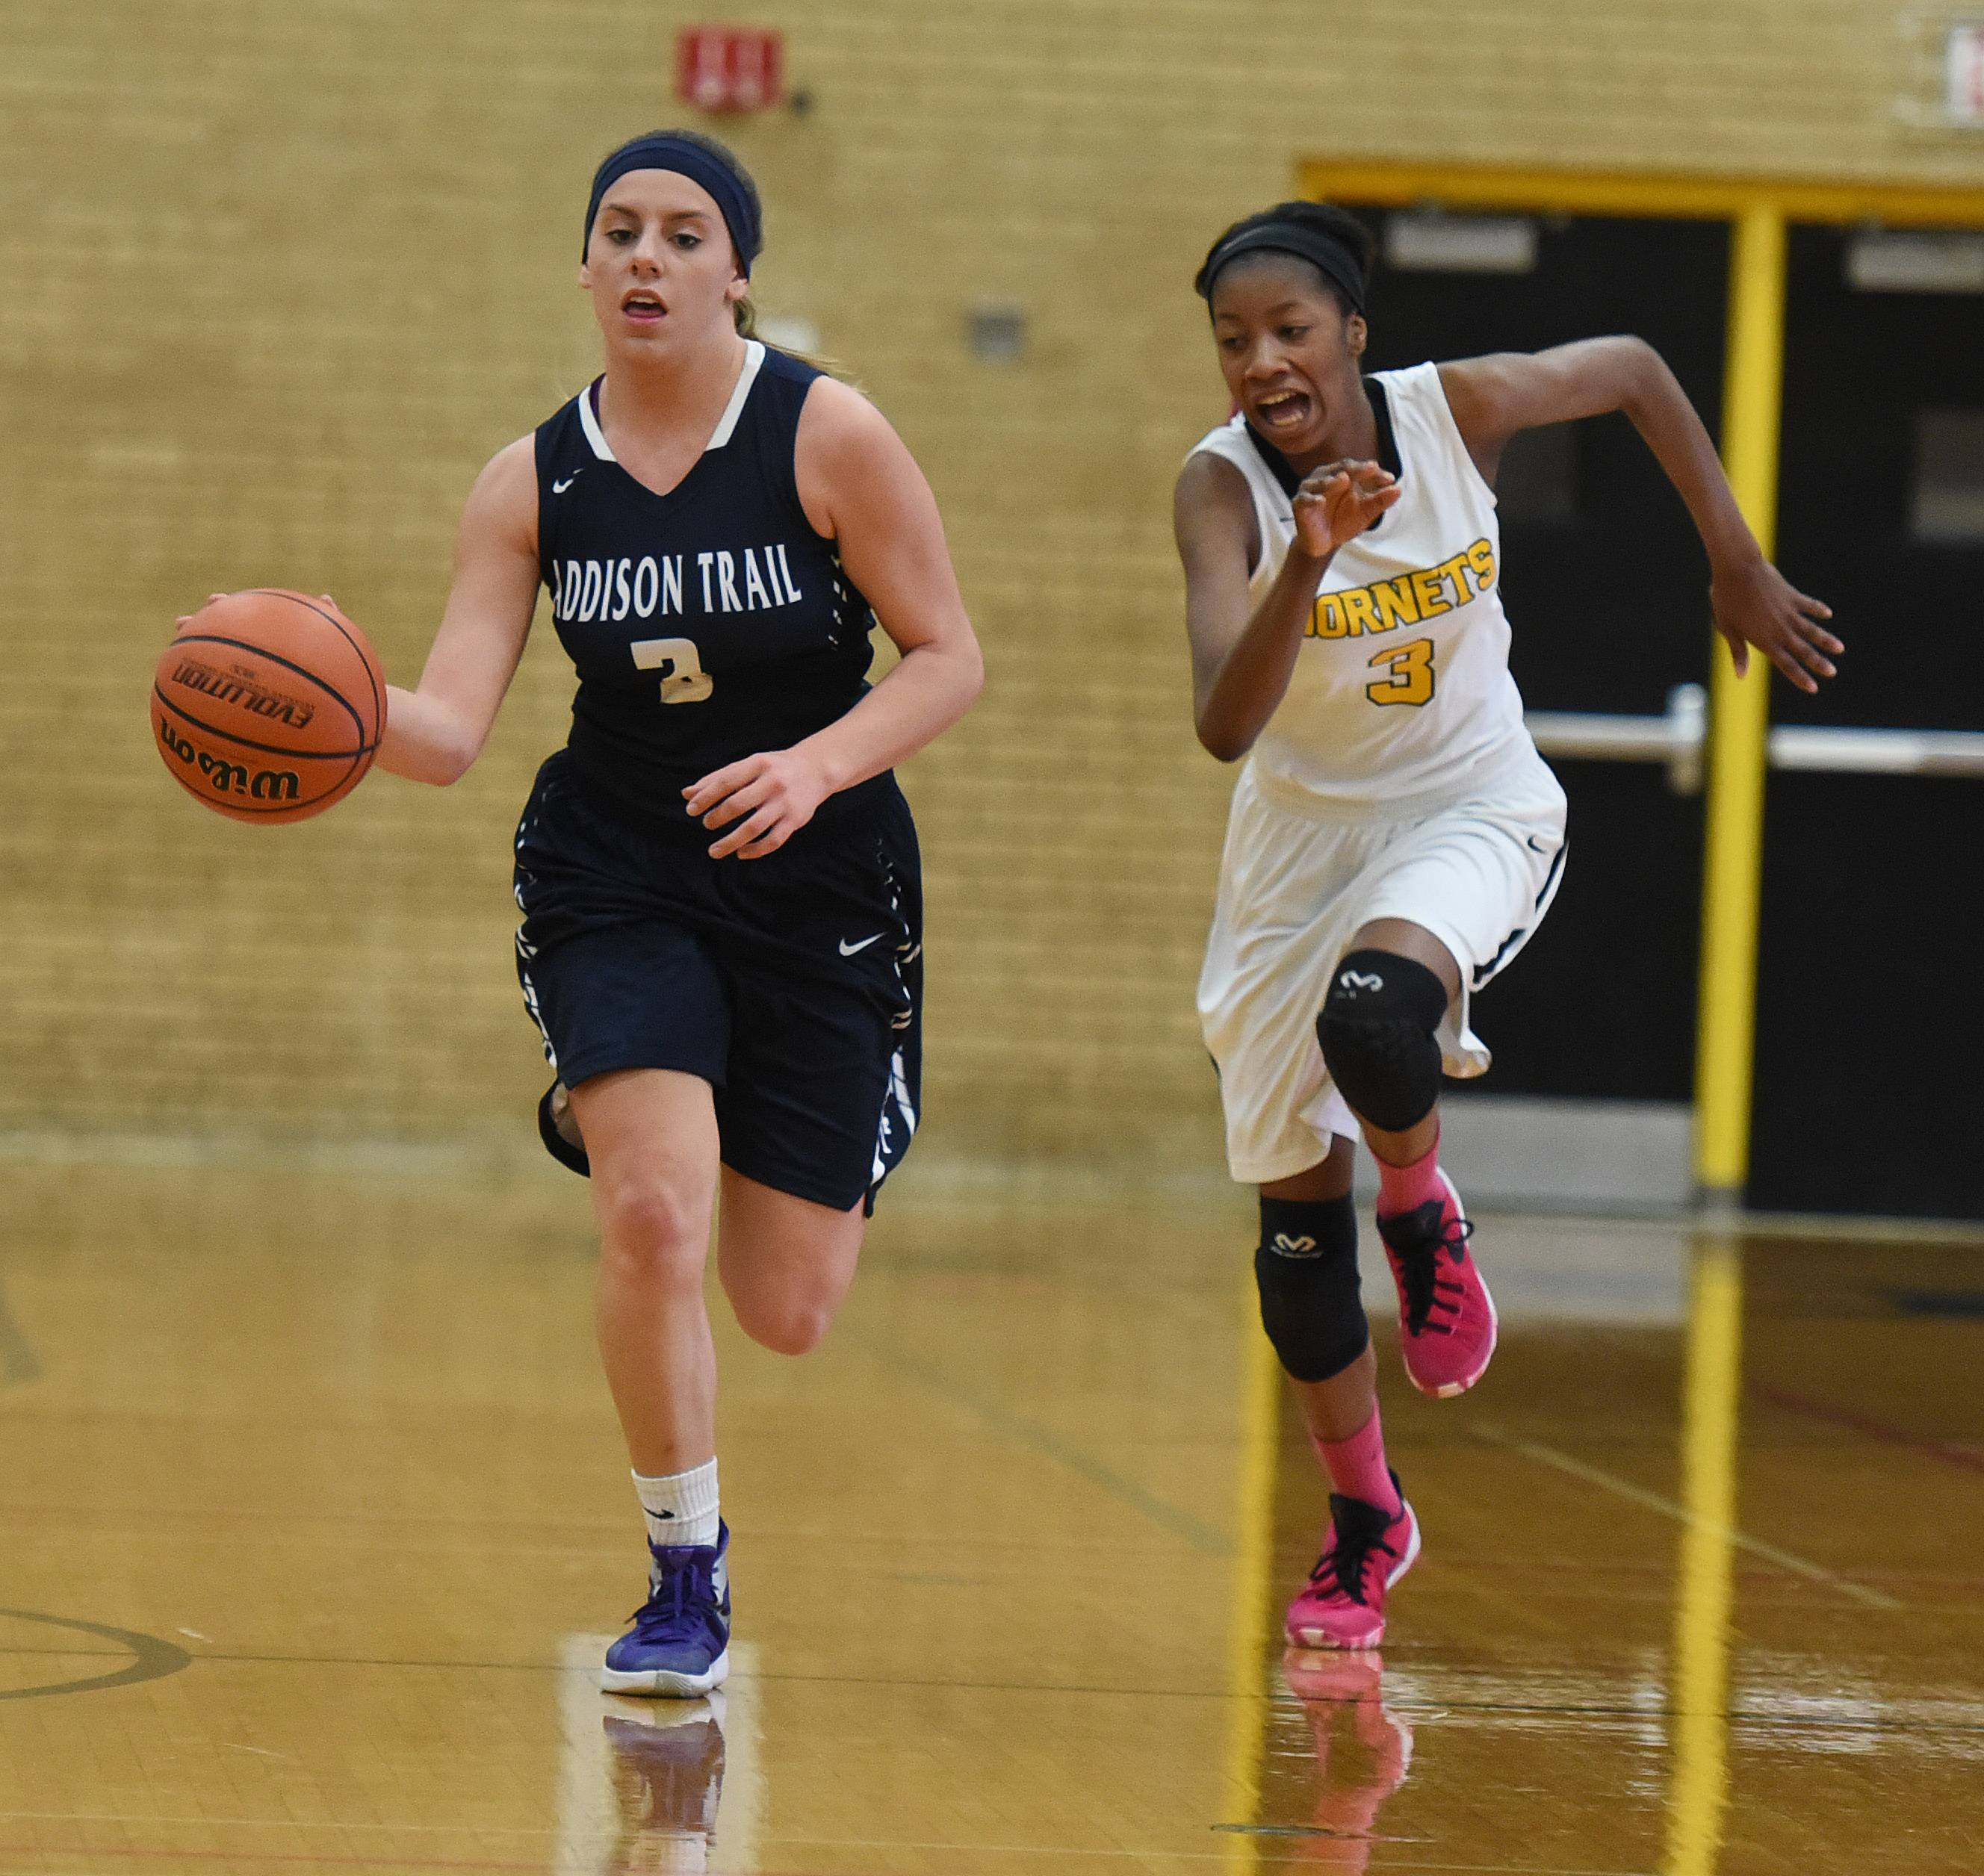 Nicci Scorza of Addison Trail moves the ball as Hinsdale South's Evelyn Edmond (3) chases.